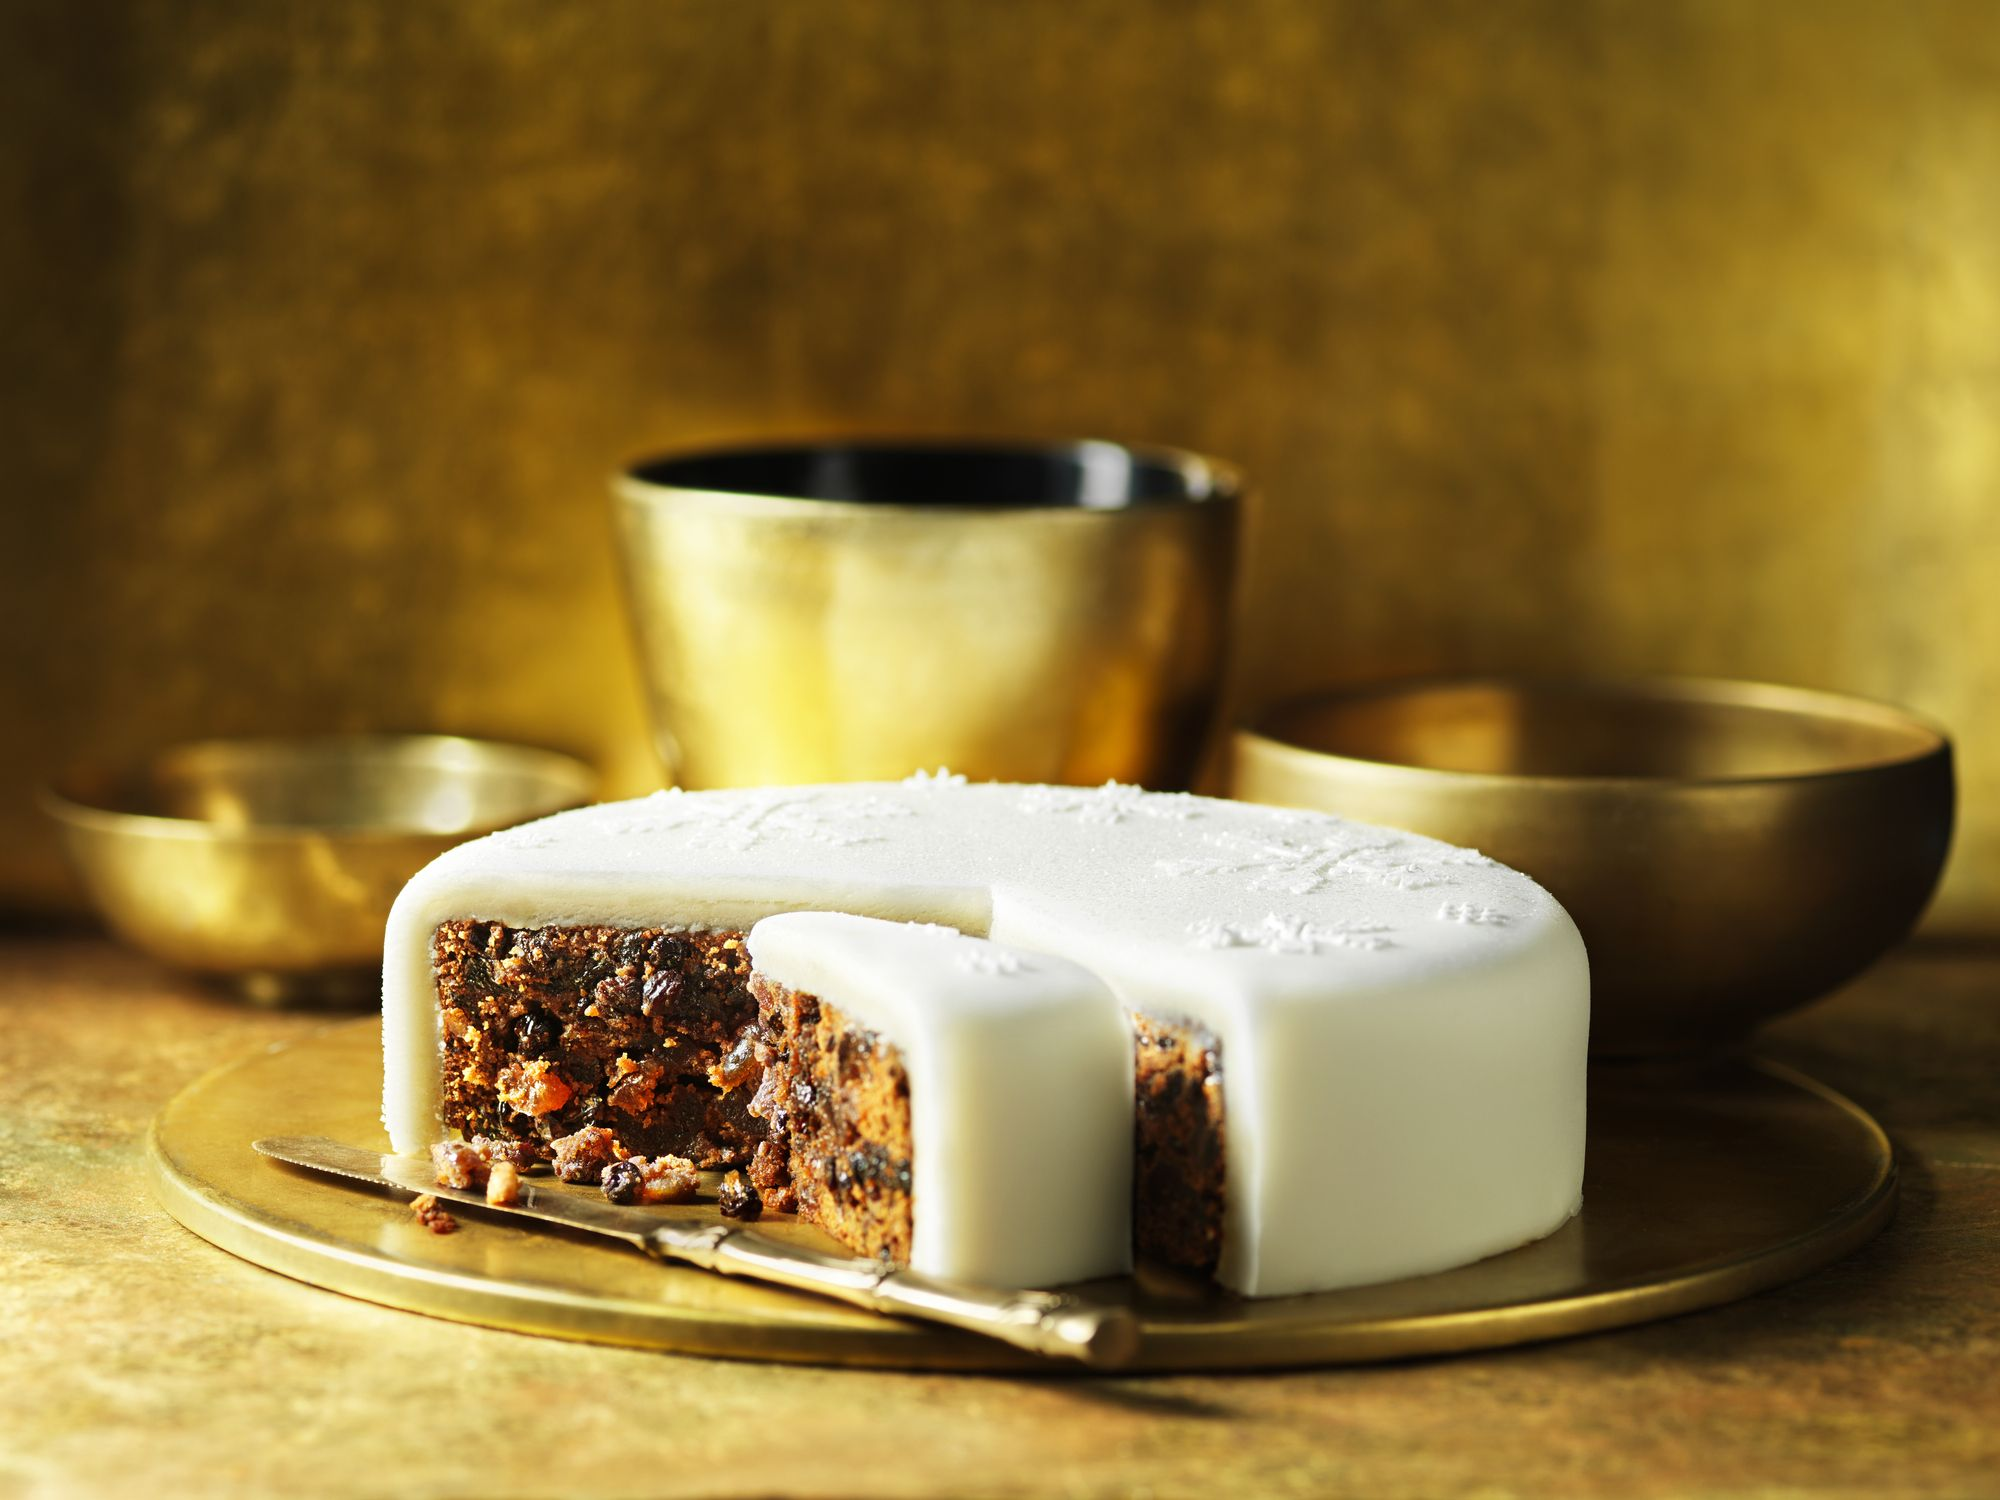 The best Christmas cake to have in 2019